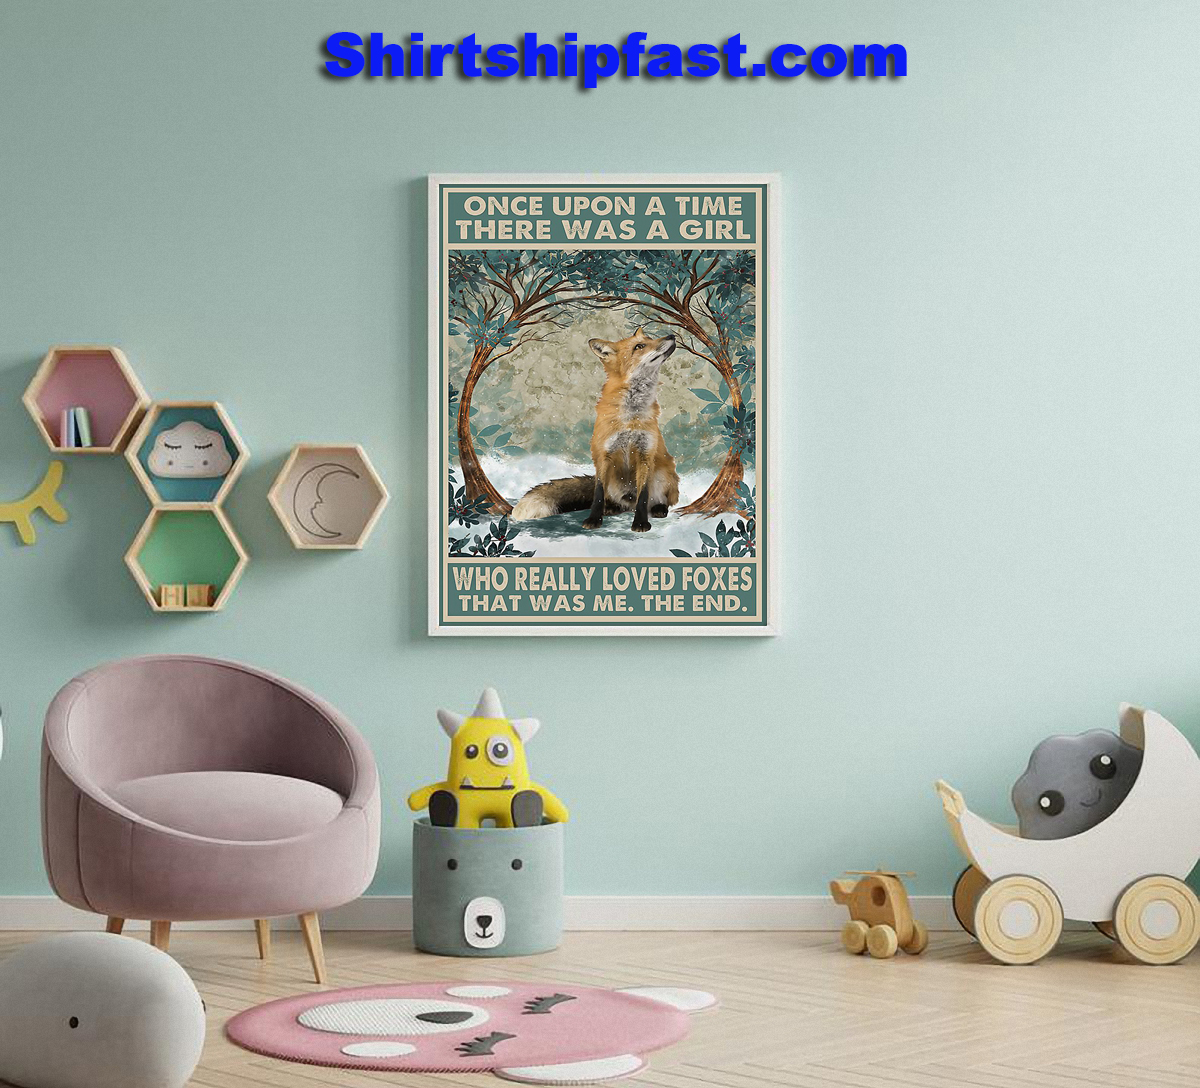 Once upon a time there was a girl loved foxes poster - Picture 3